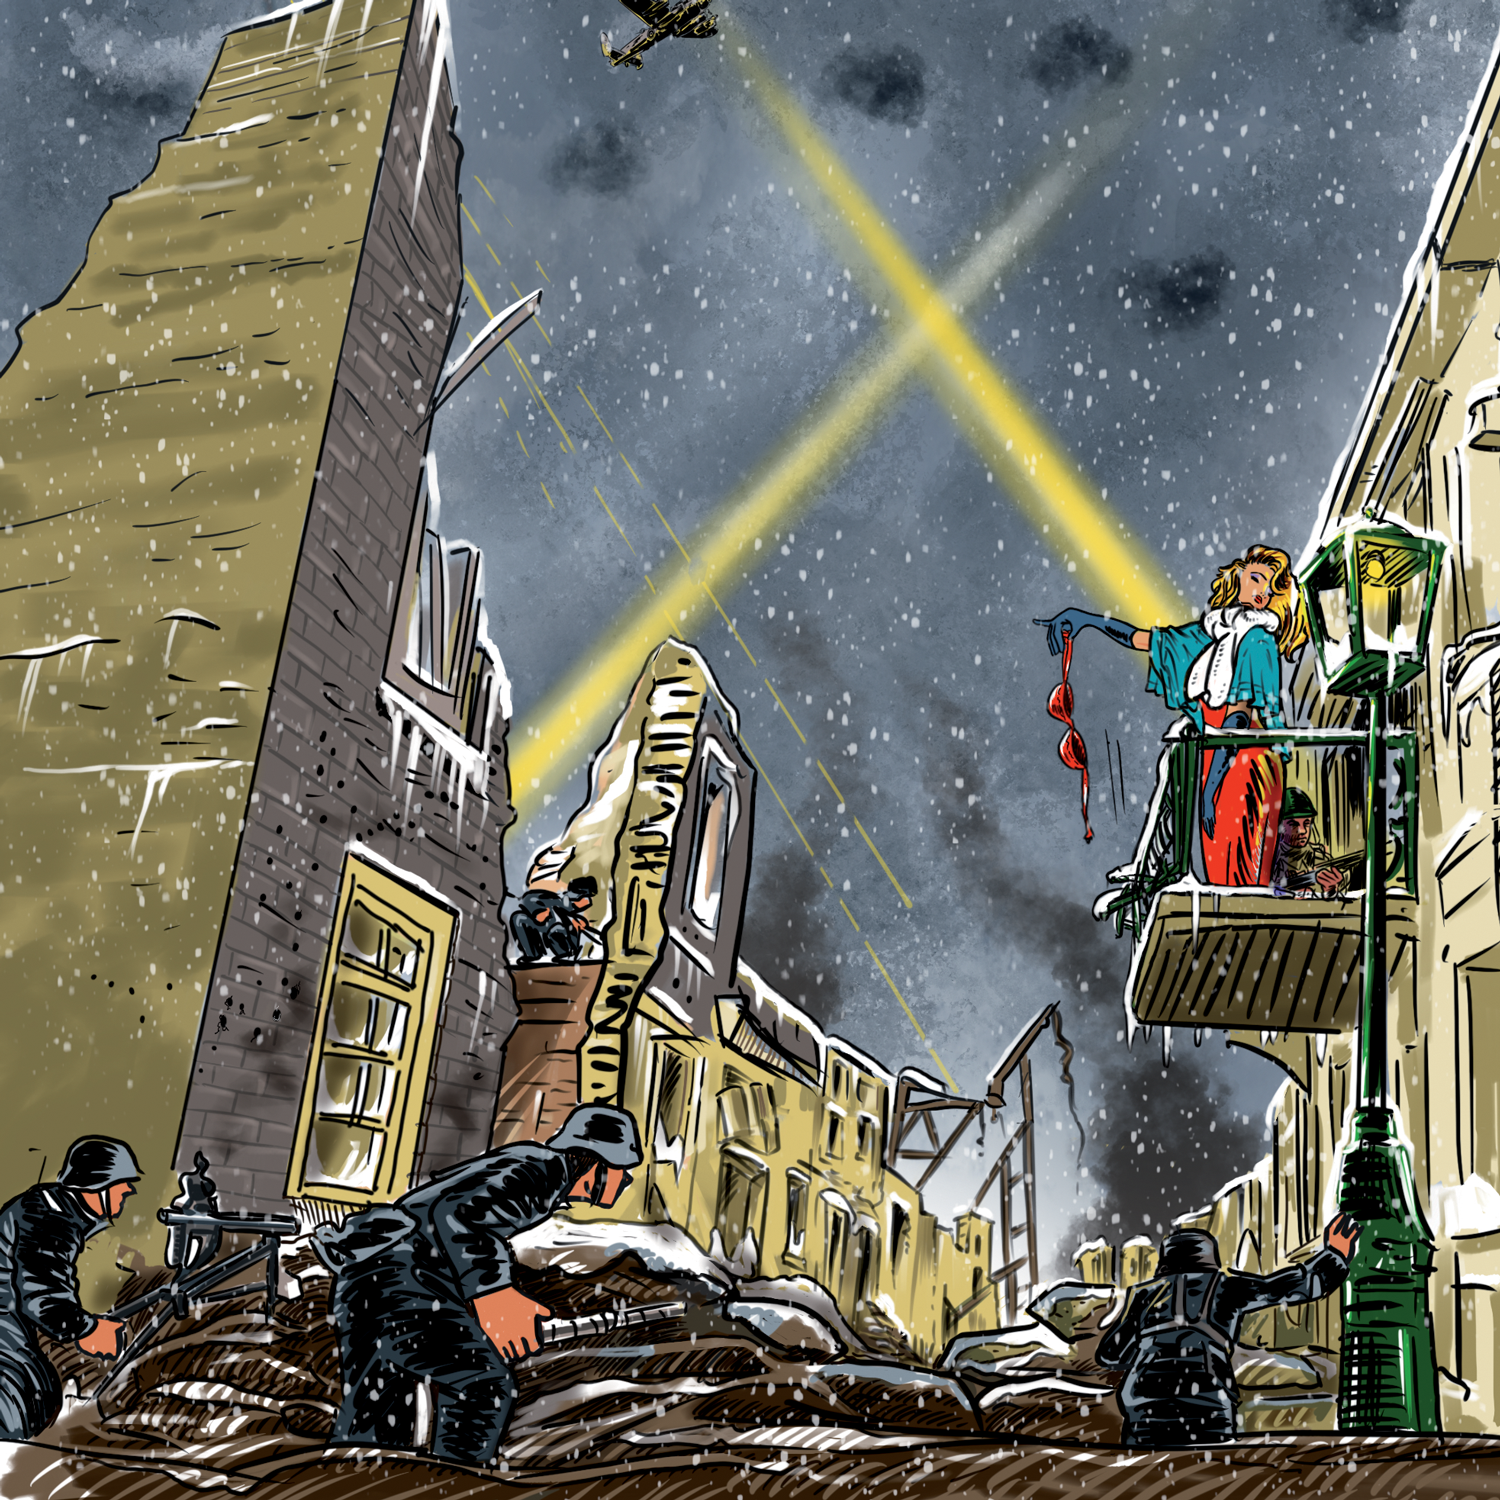 Spy artwork from Clash of the Ardennes Image courtesy of Elwin Klappe